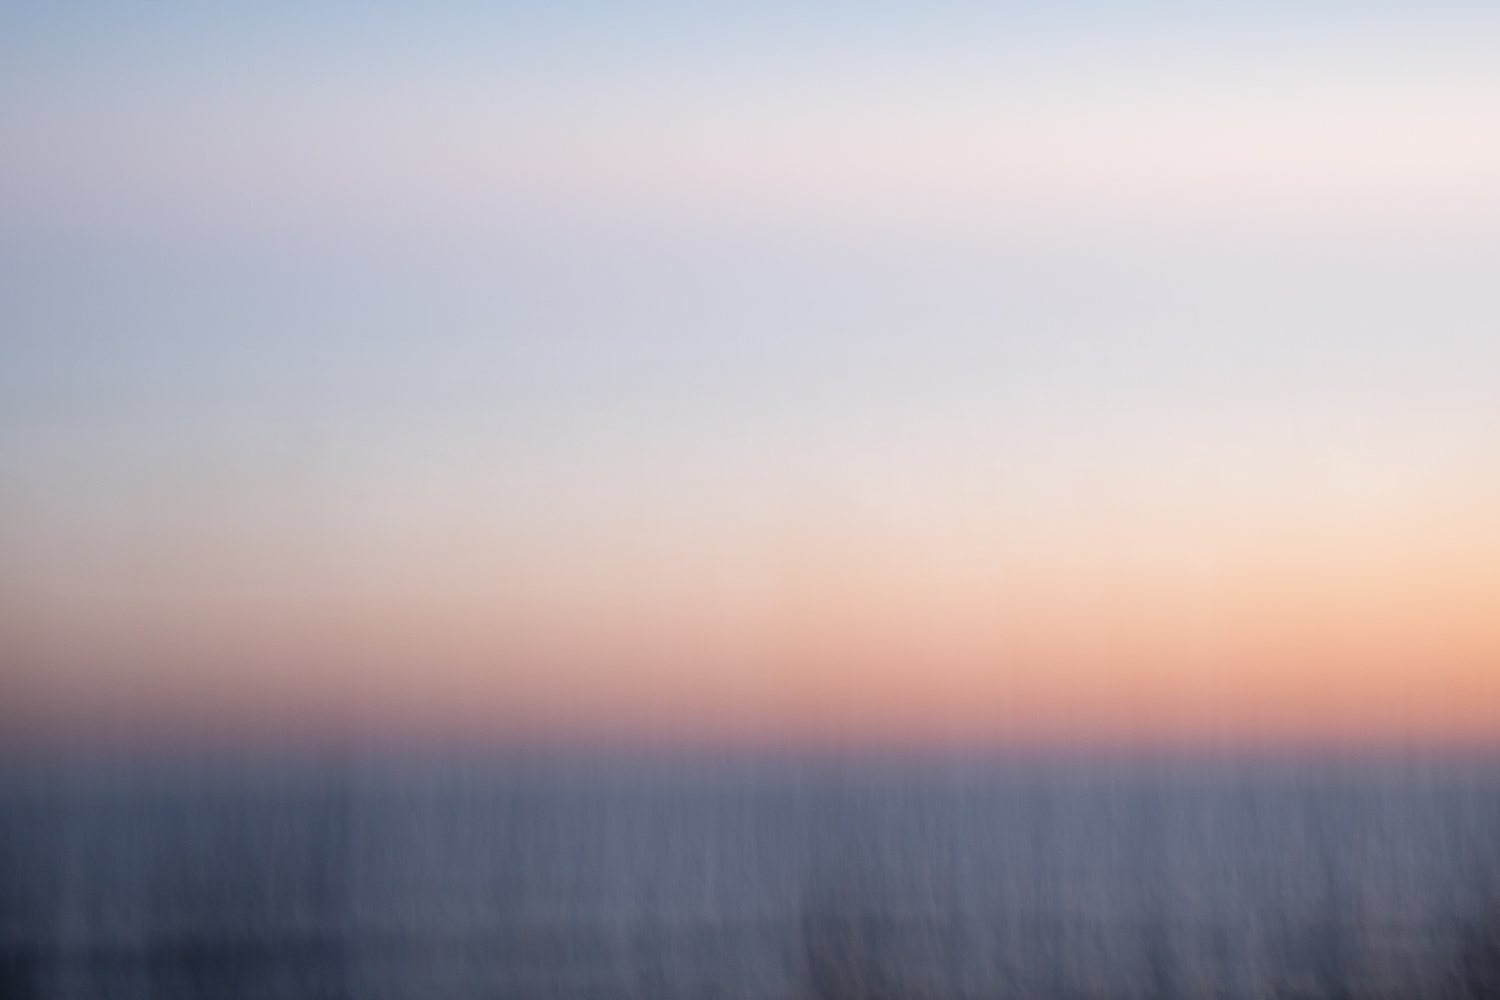 bodega head abstract 6.jpg